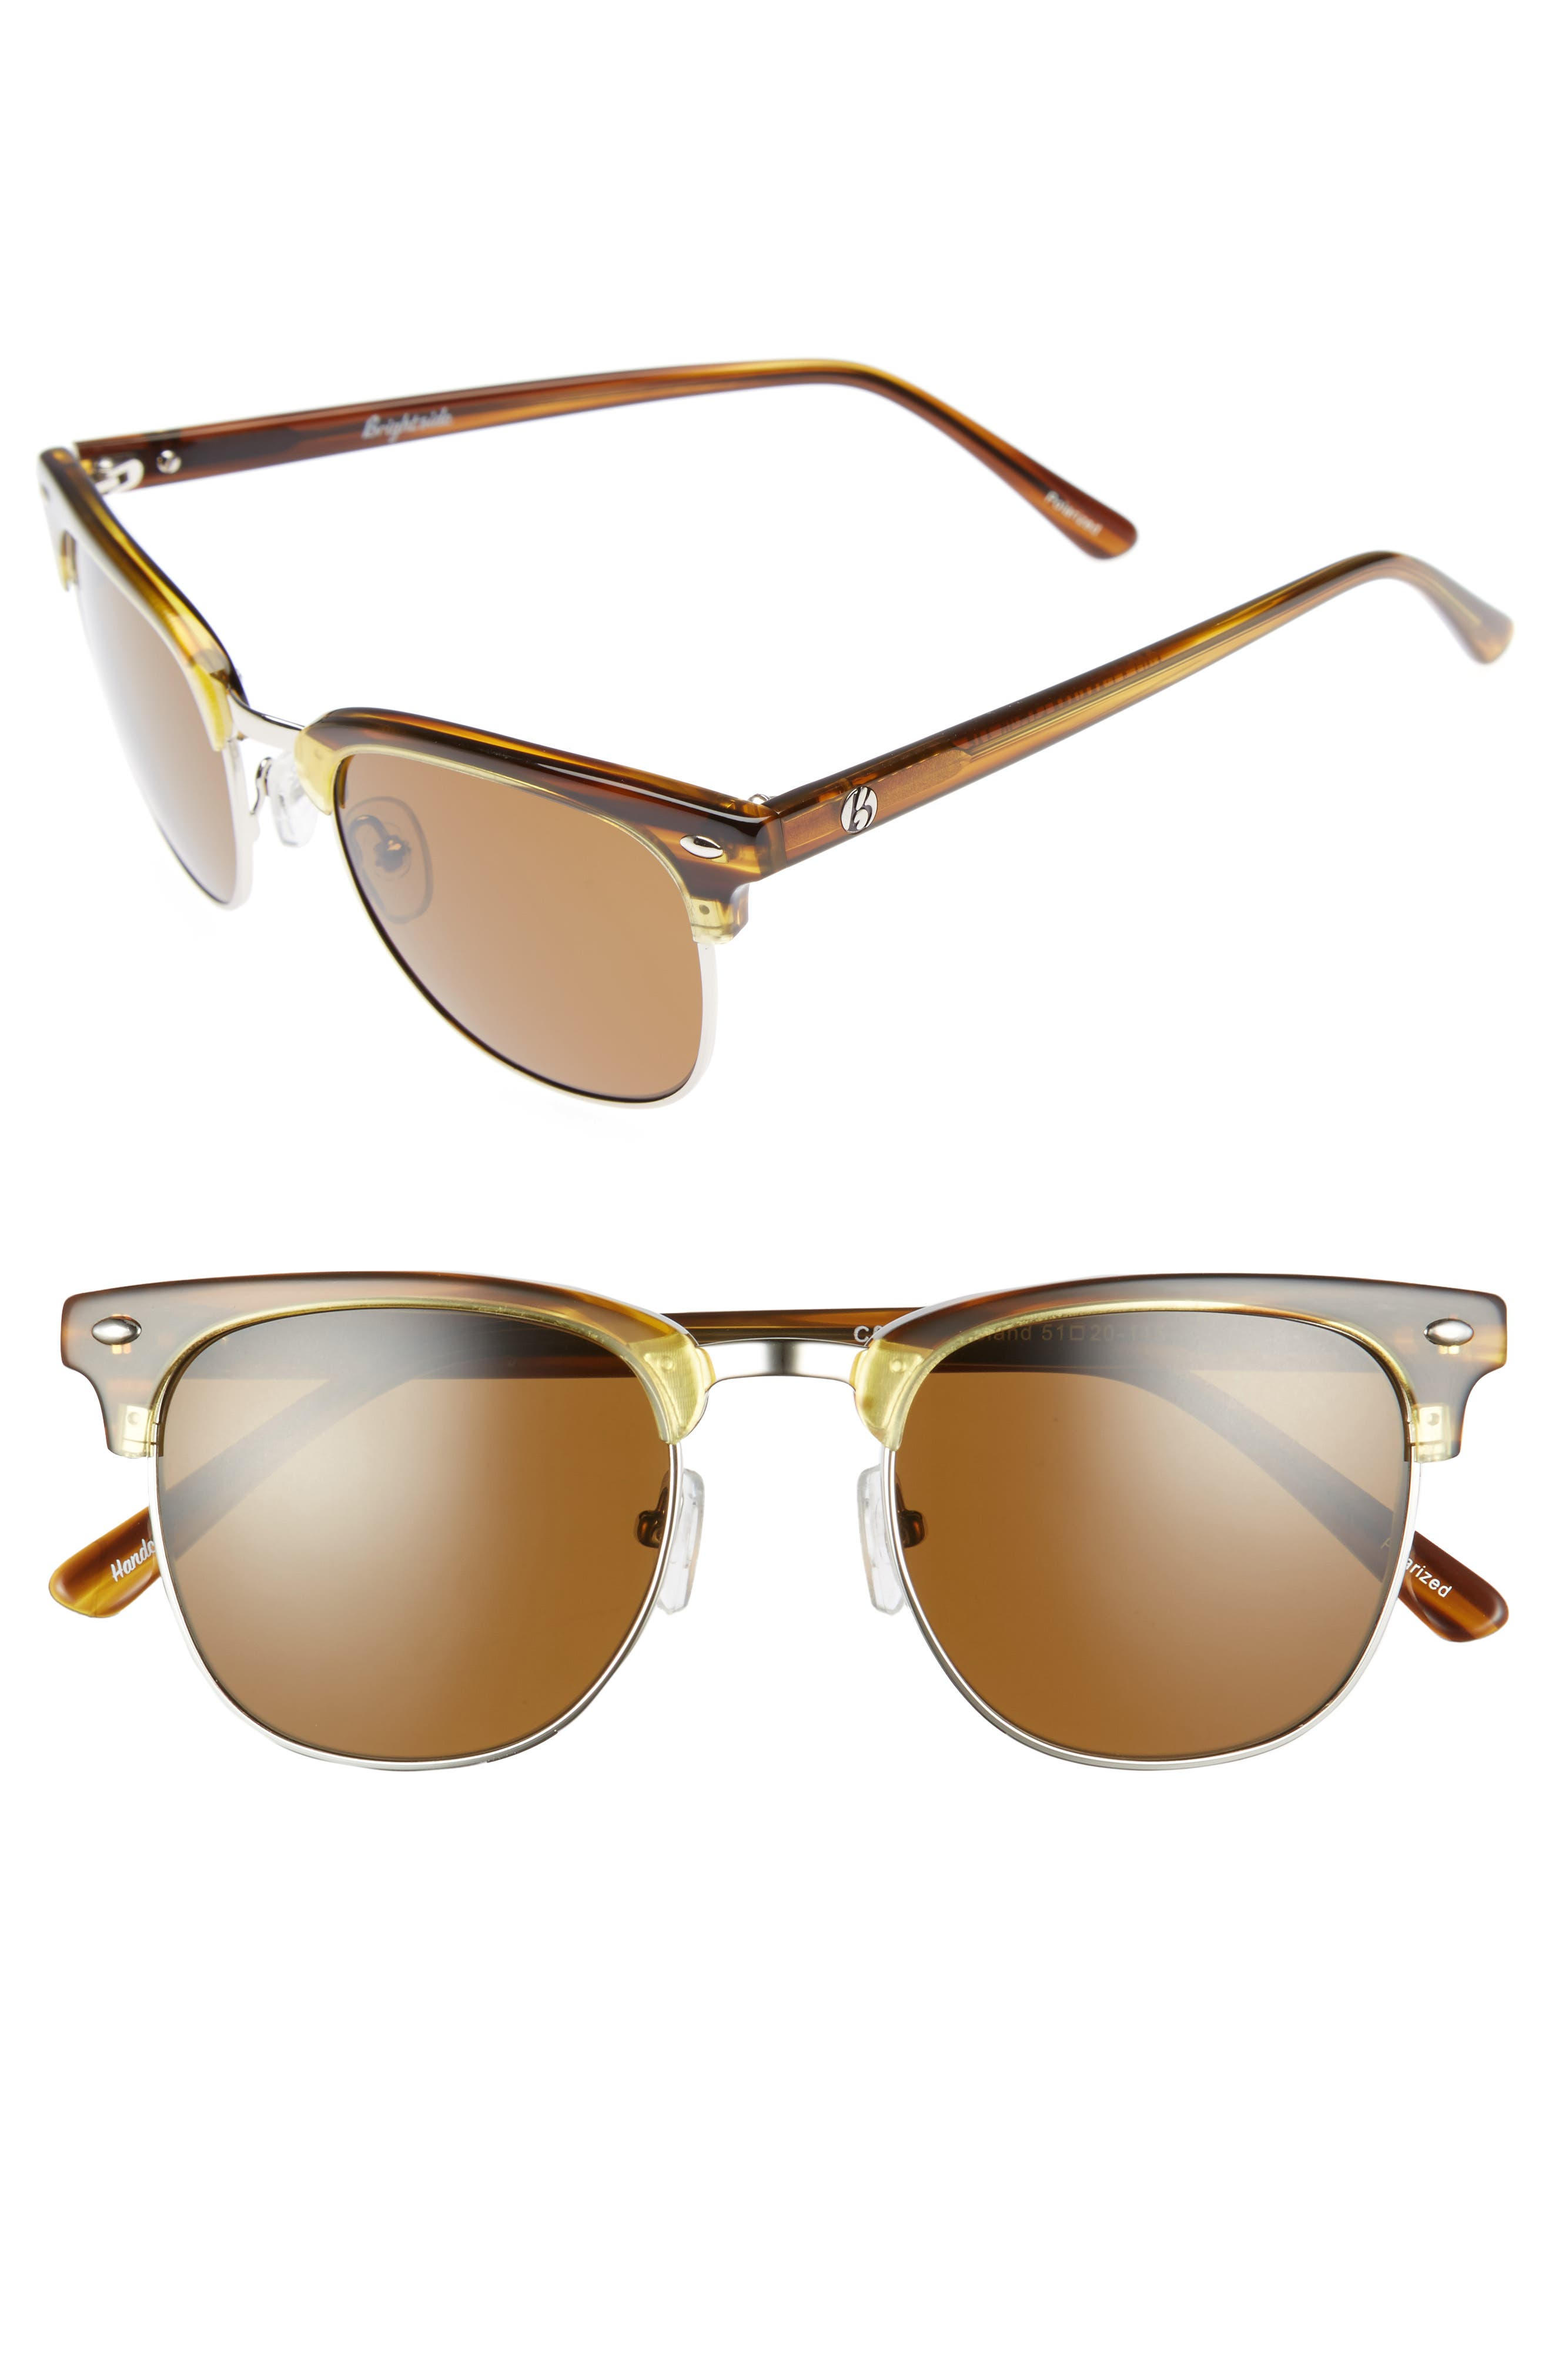 Copeland 51mm Polarized Sunglasses,                             Main thumbnail 1, color,                             Amber/ Brown Polar